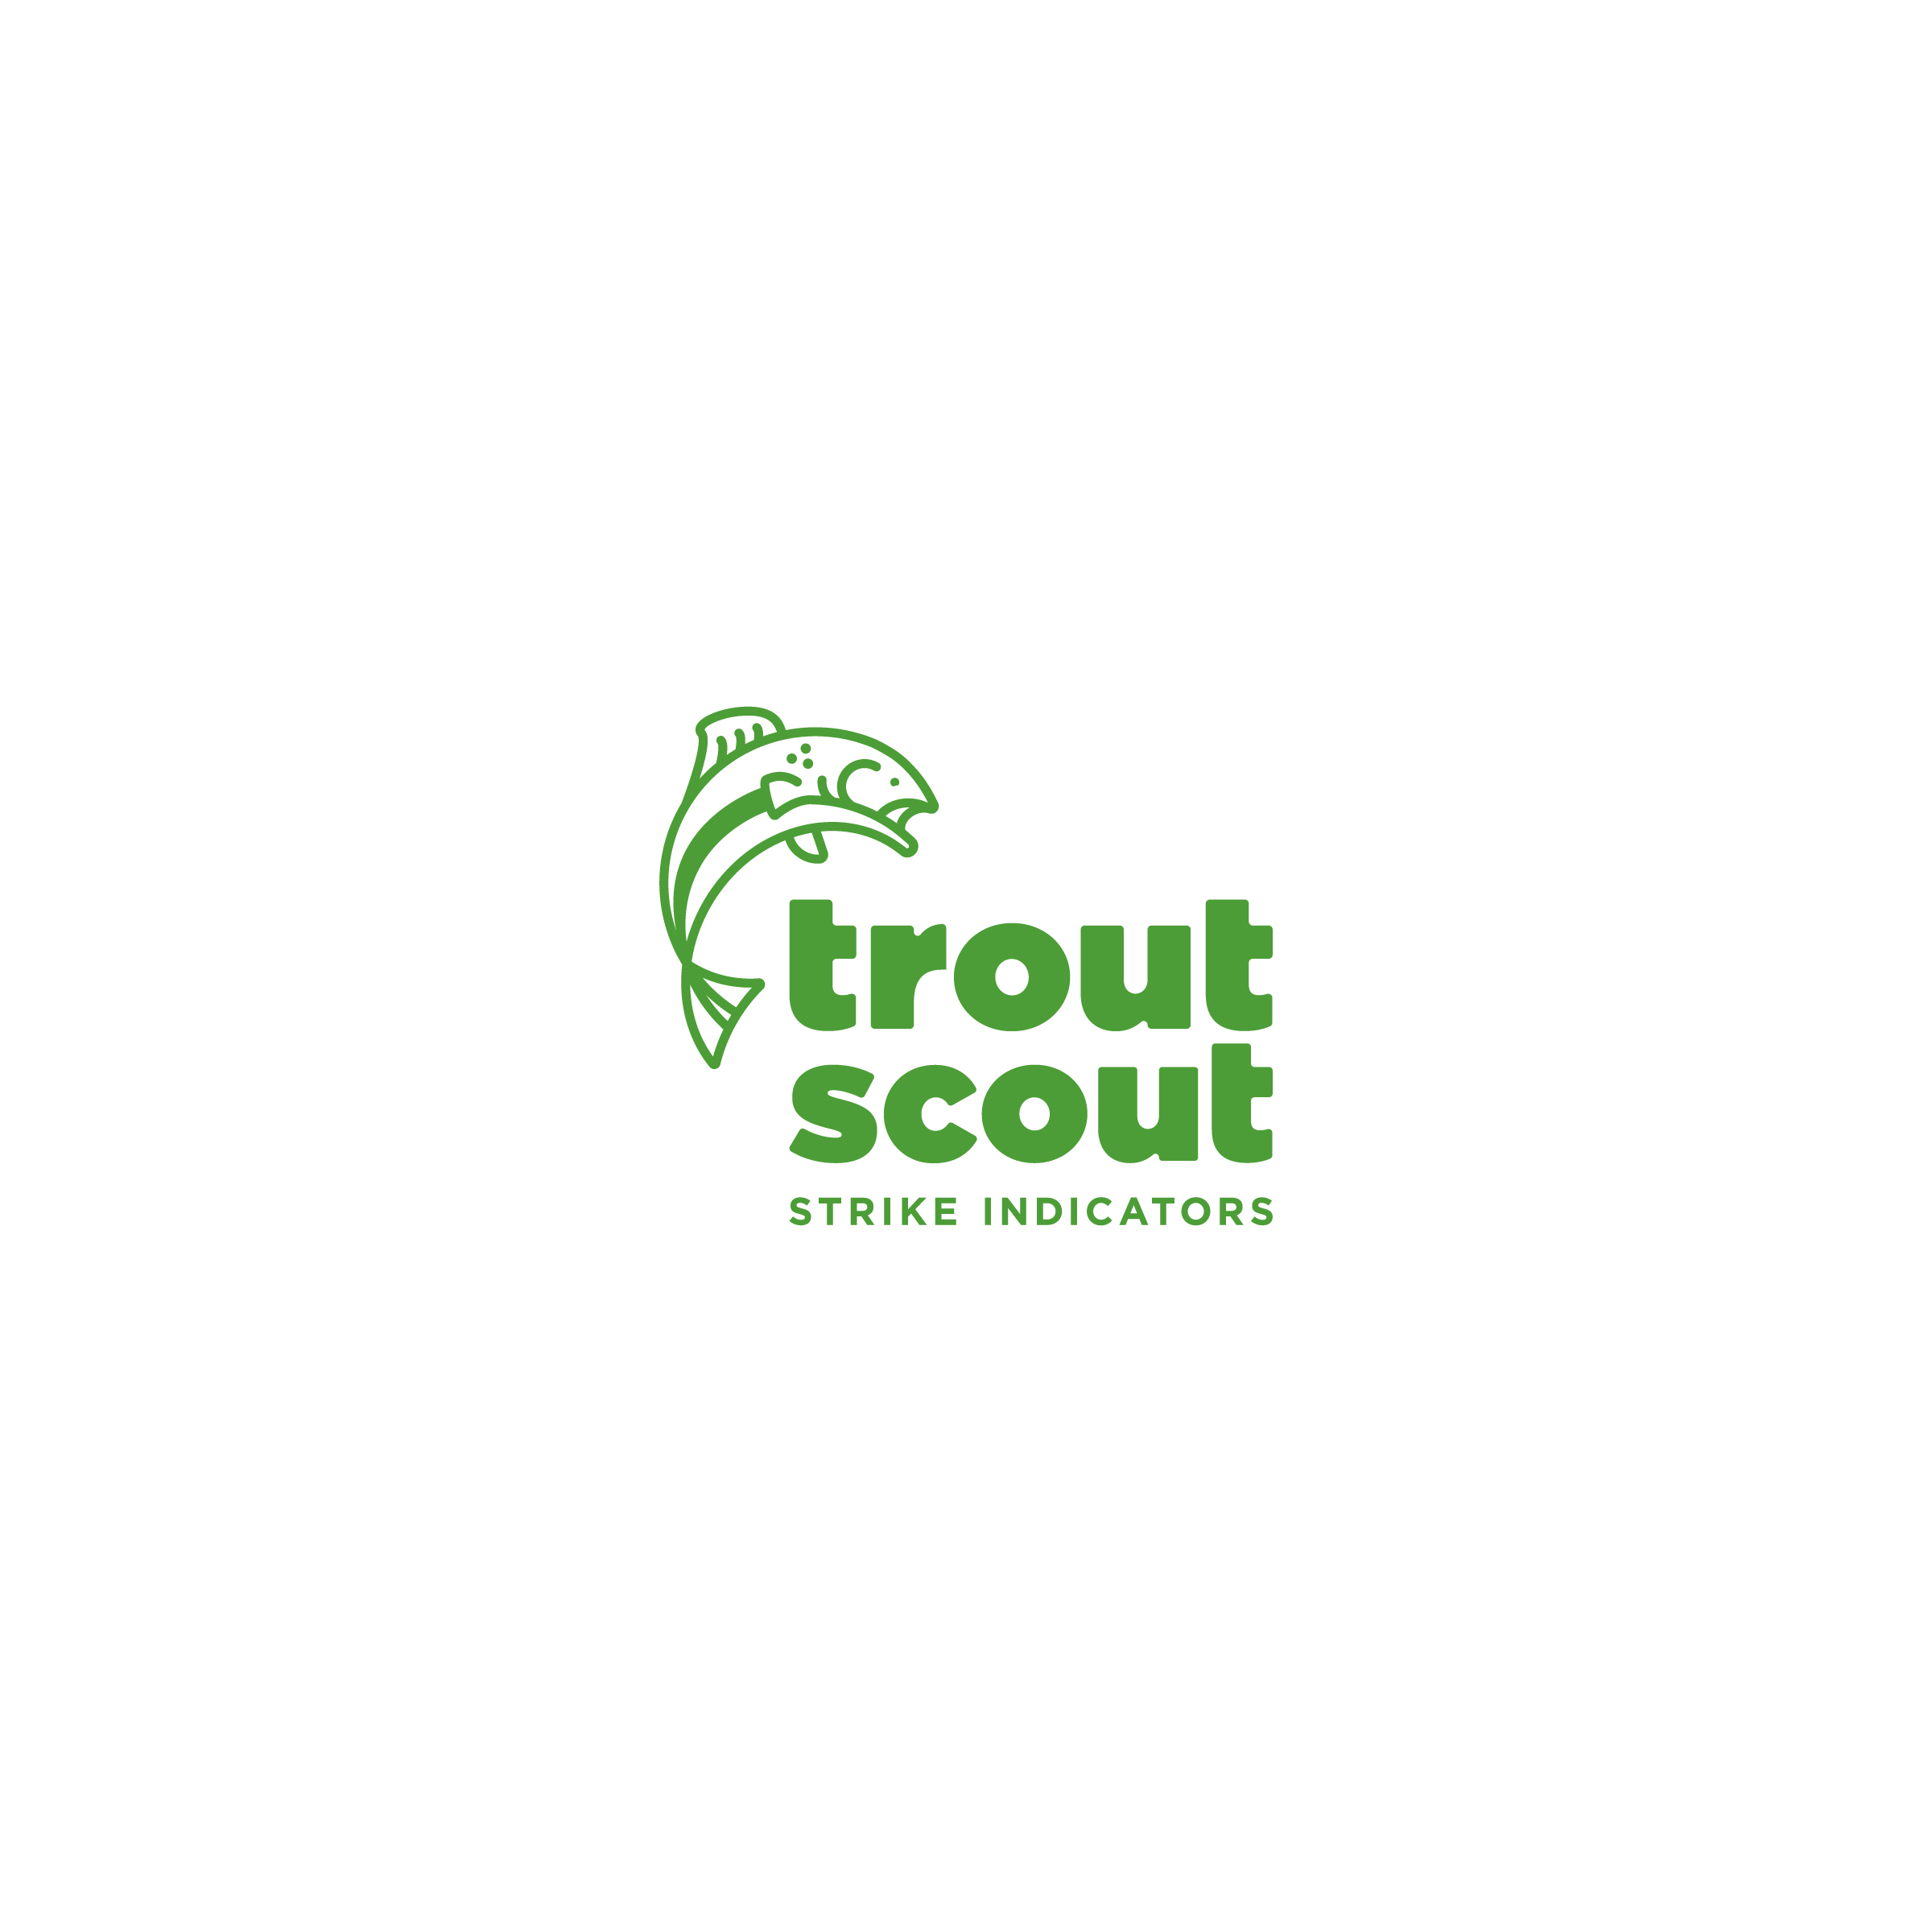 TroutScout_Green_Vrt.jpg